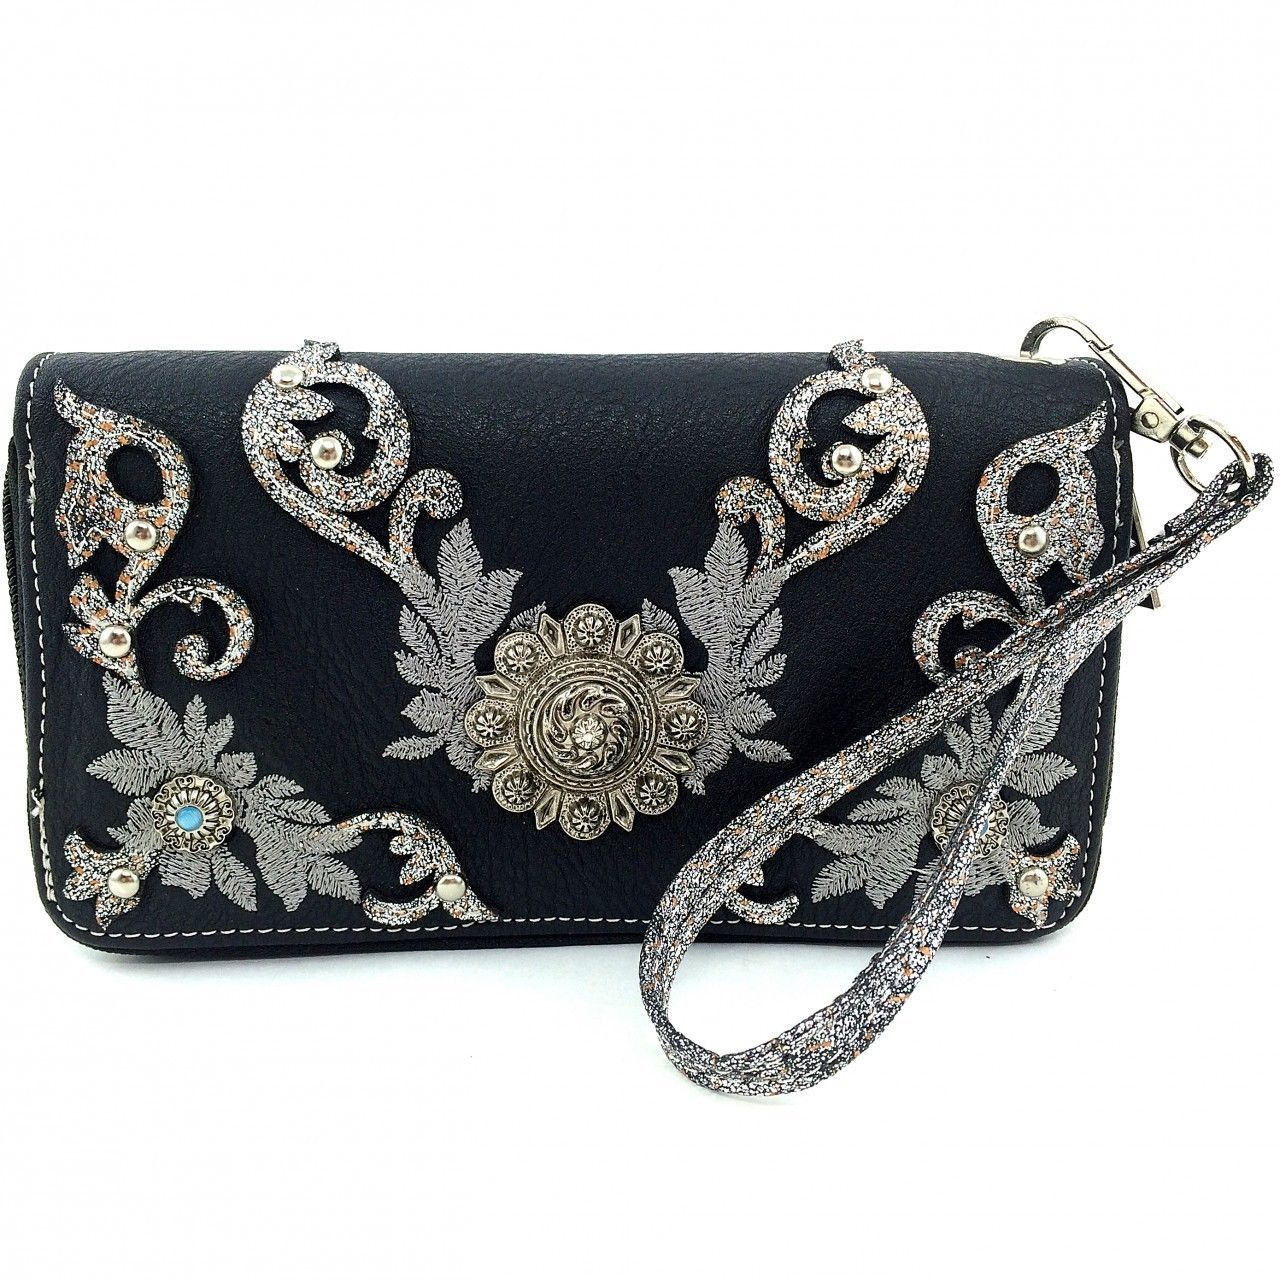 Western Rhinestone Concho Embroidery Zip Around Wallet Clutch Purse Wristlet